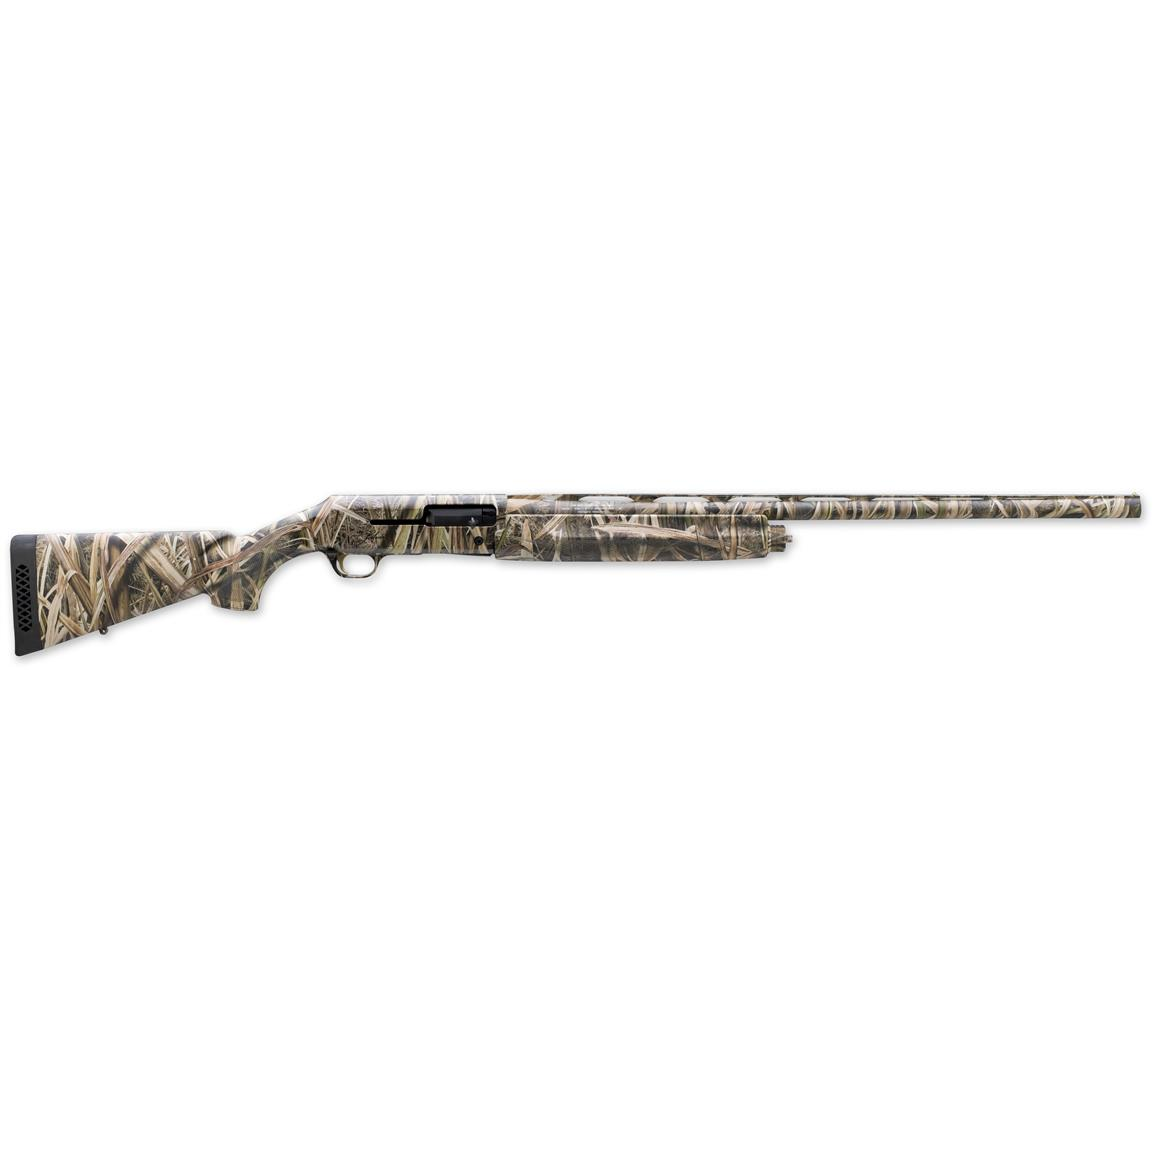 Browning Silver Mossy Oak Shadow Grass Blades, Semi-automatic, 12 Gauge, 011403205, 023614397908